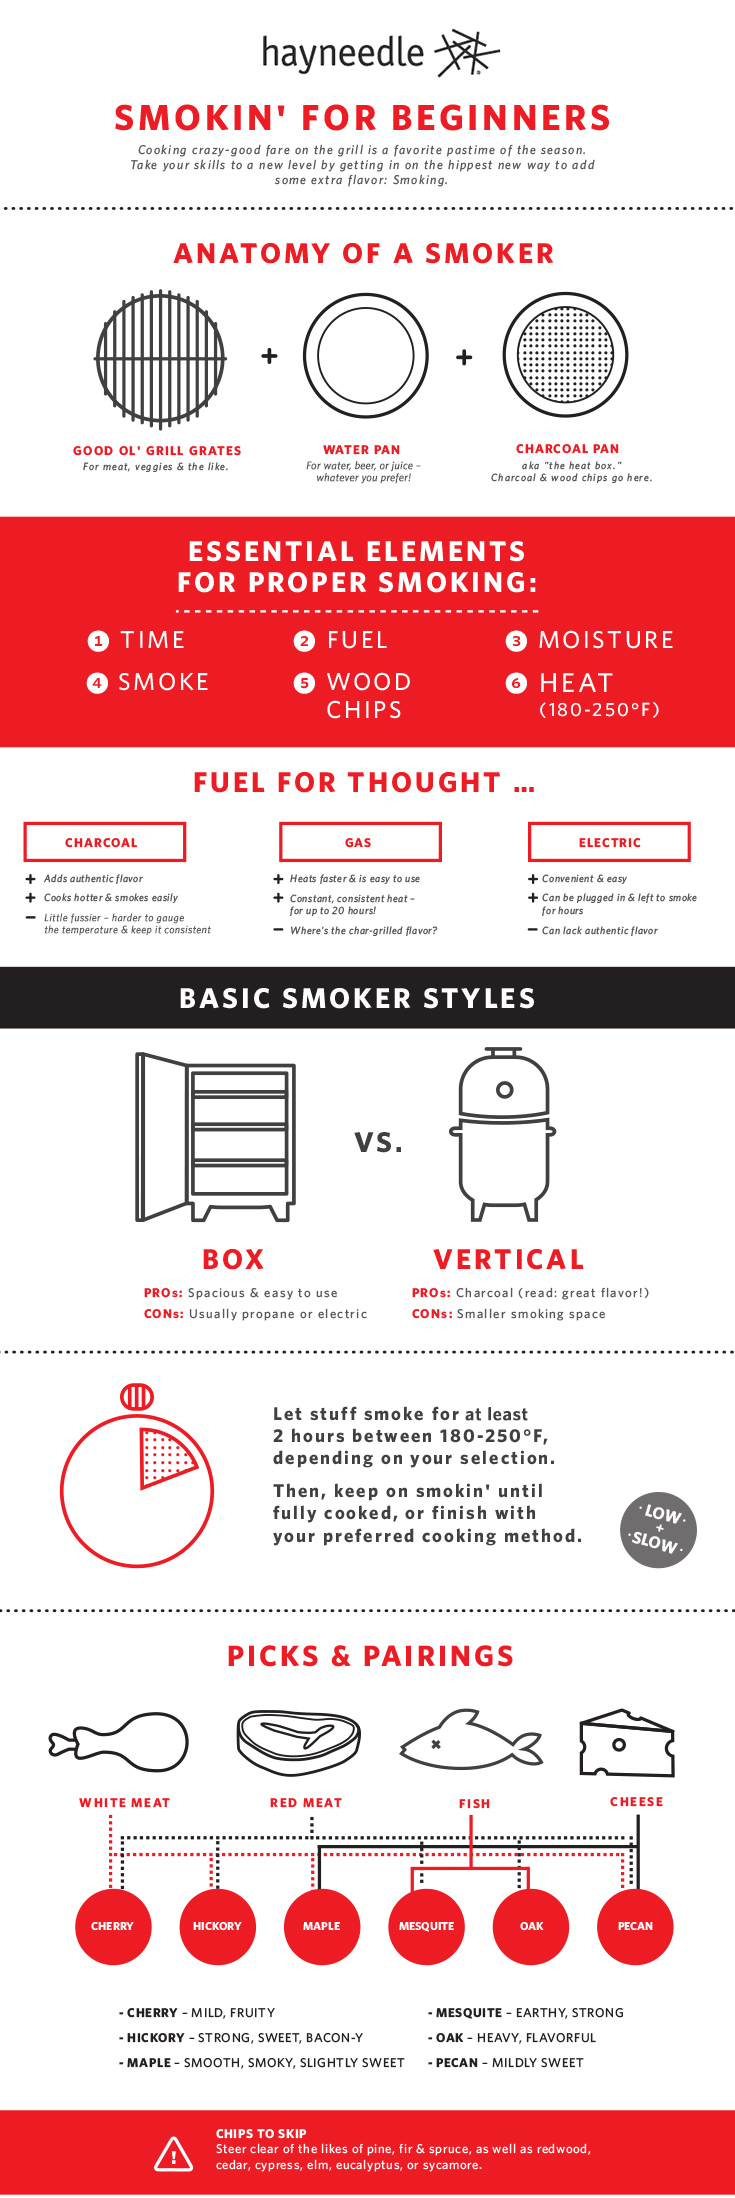 bbq smoker for beginners infographic